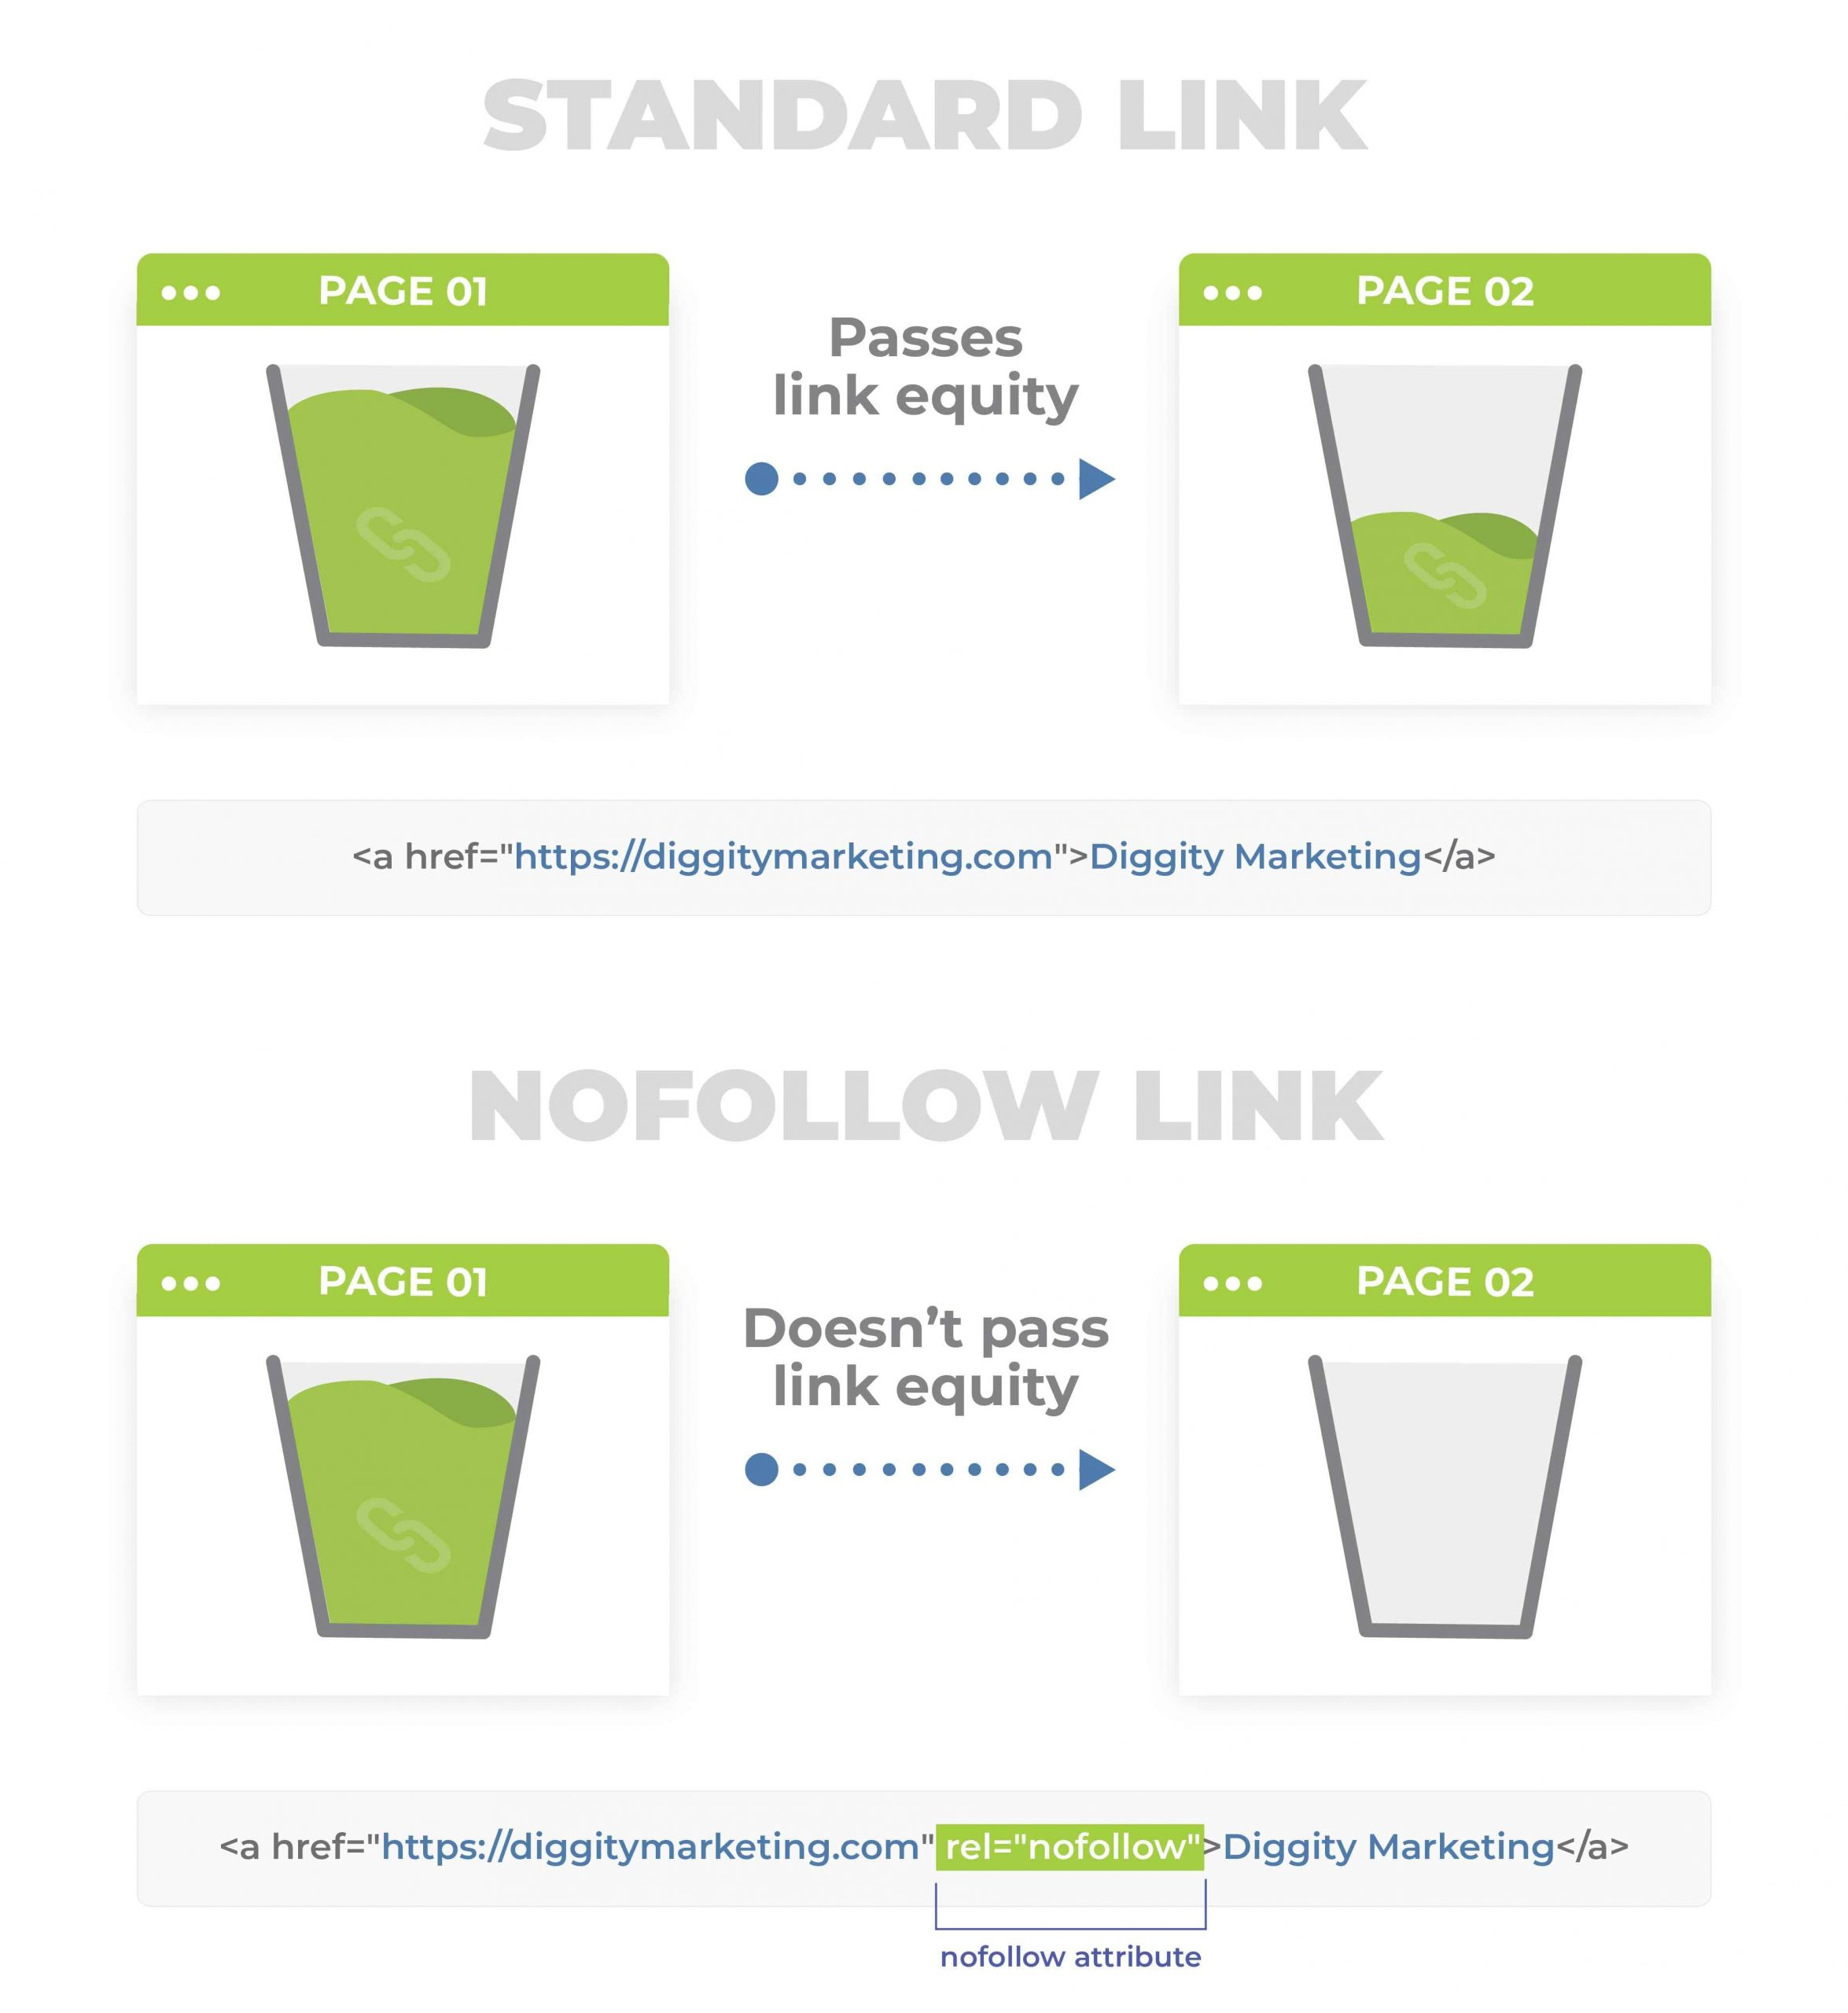 nofollow and standard link illustration